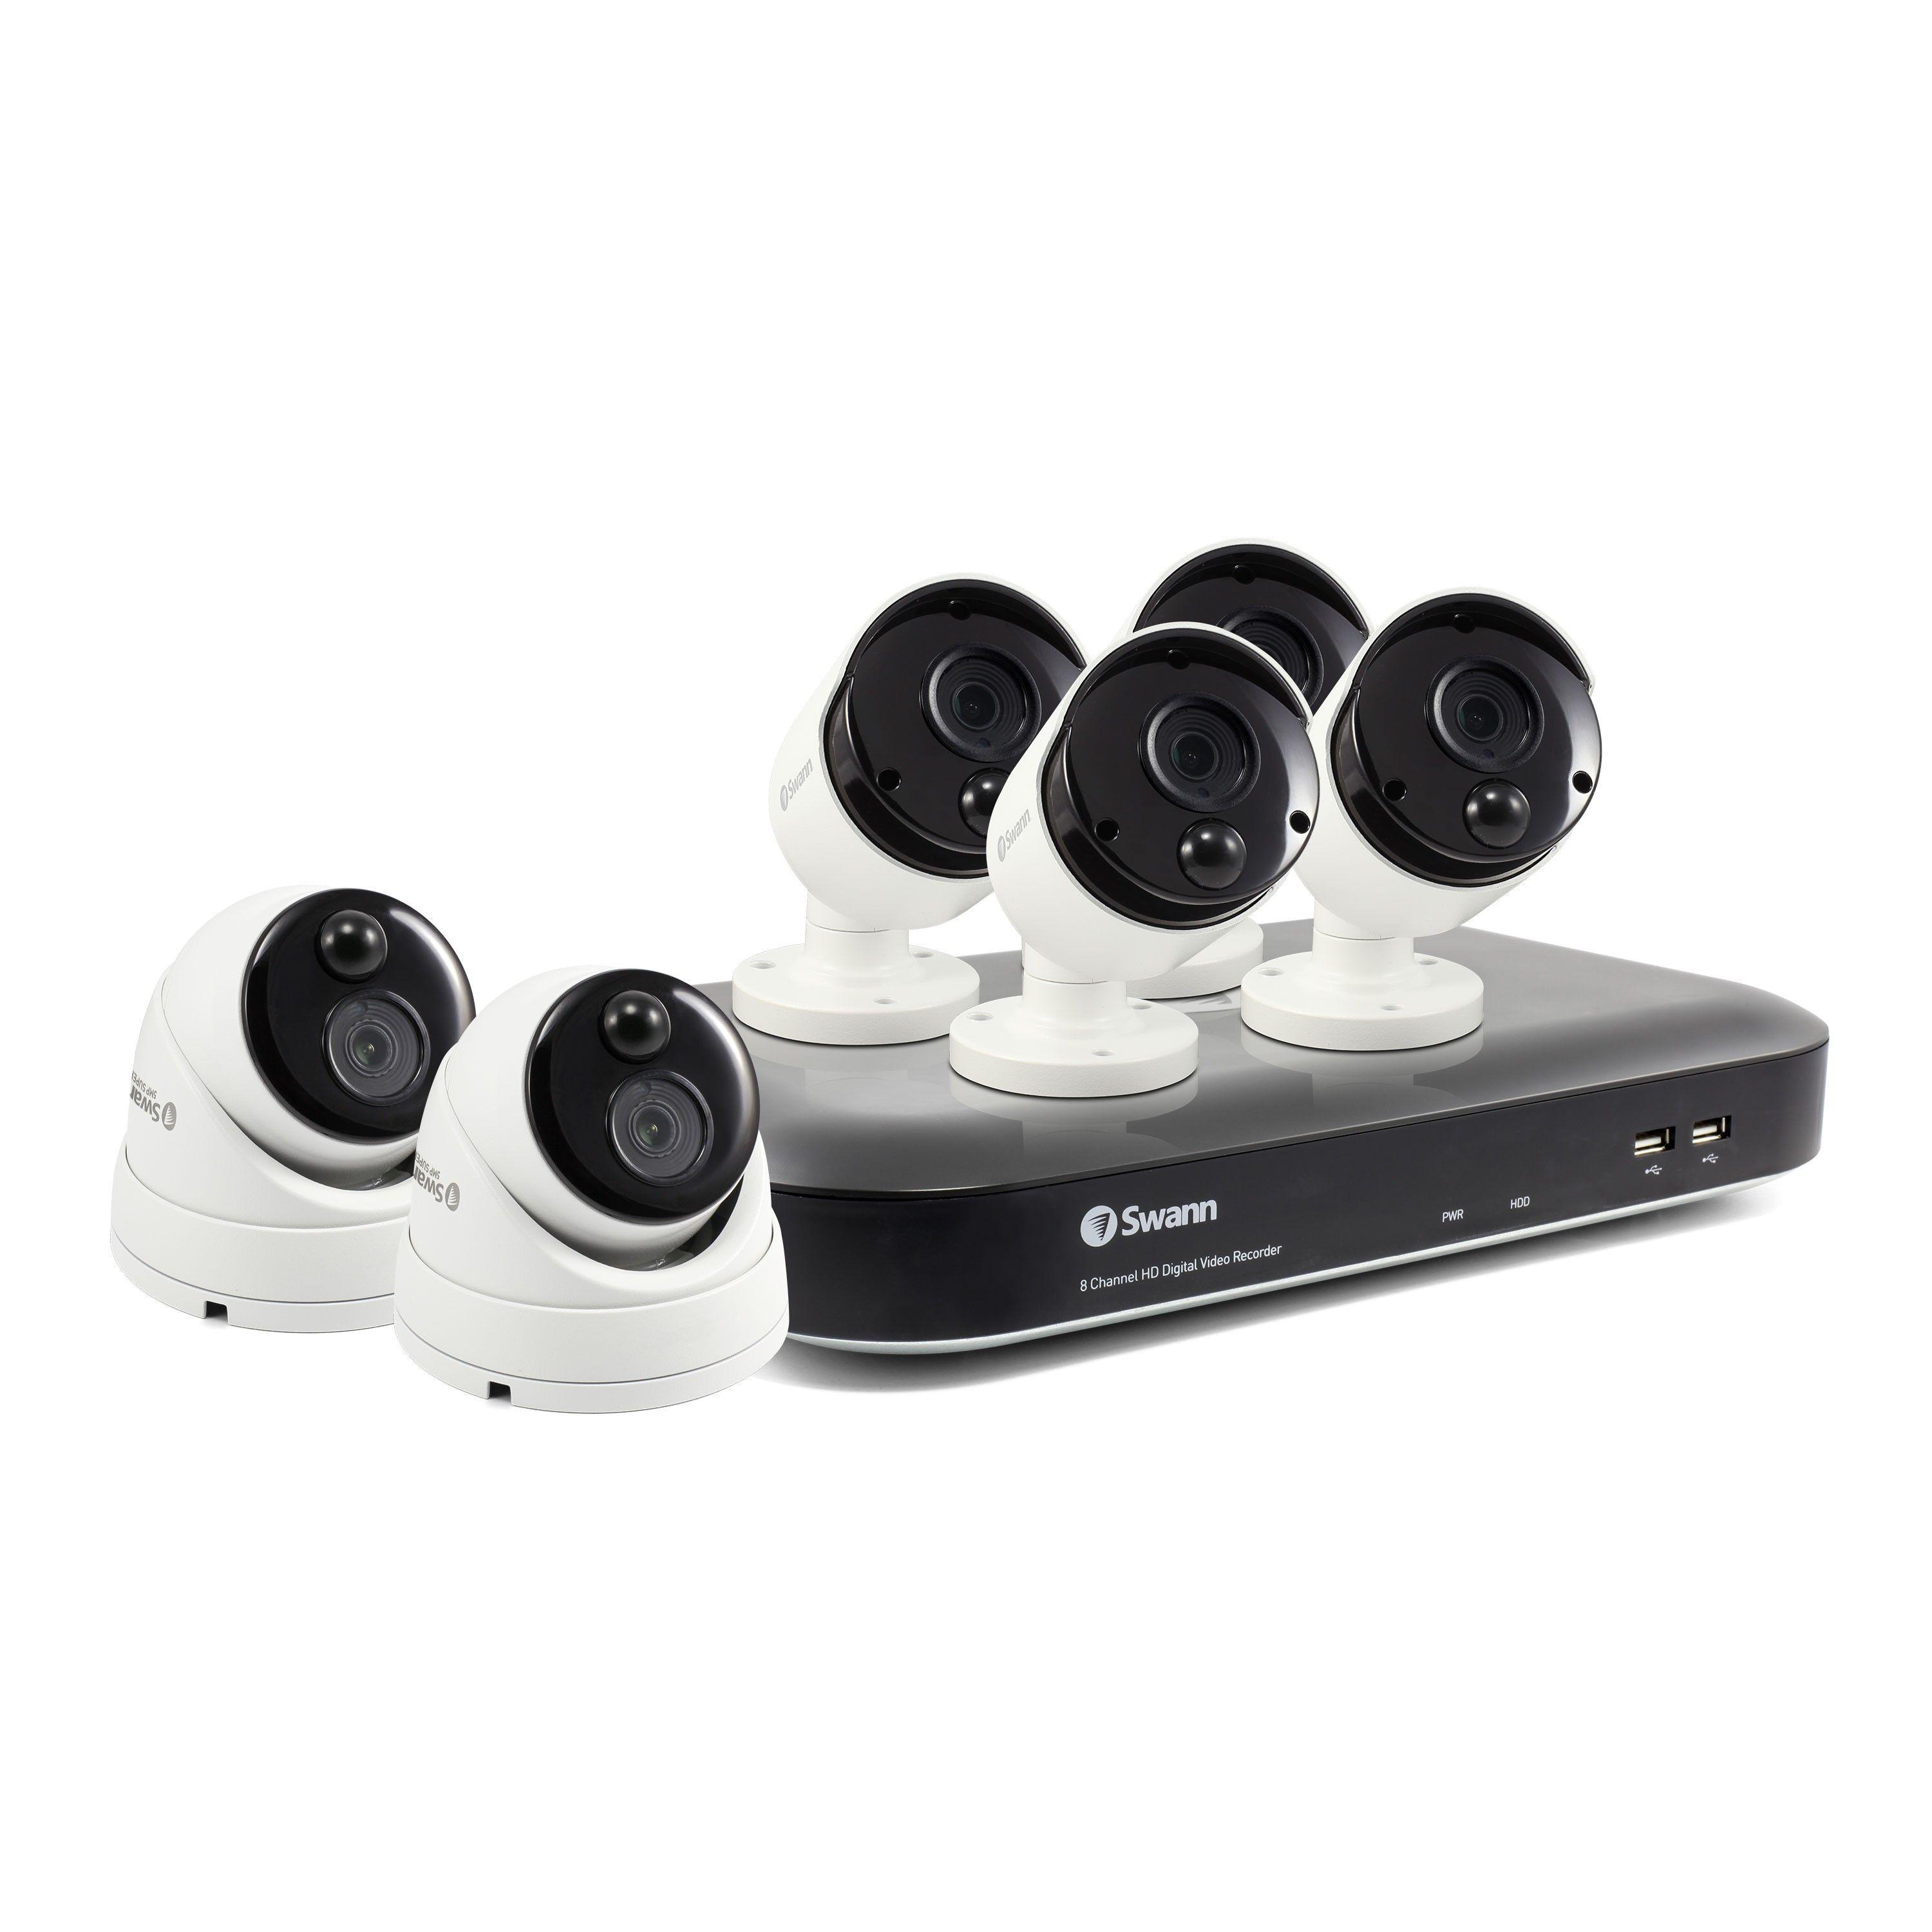 Swann 8 Channel Security System: 4K Ultra HD DVR-5580 with 2TB HDD & 6 x 4K Thermal Sensing Cameras